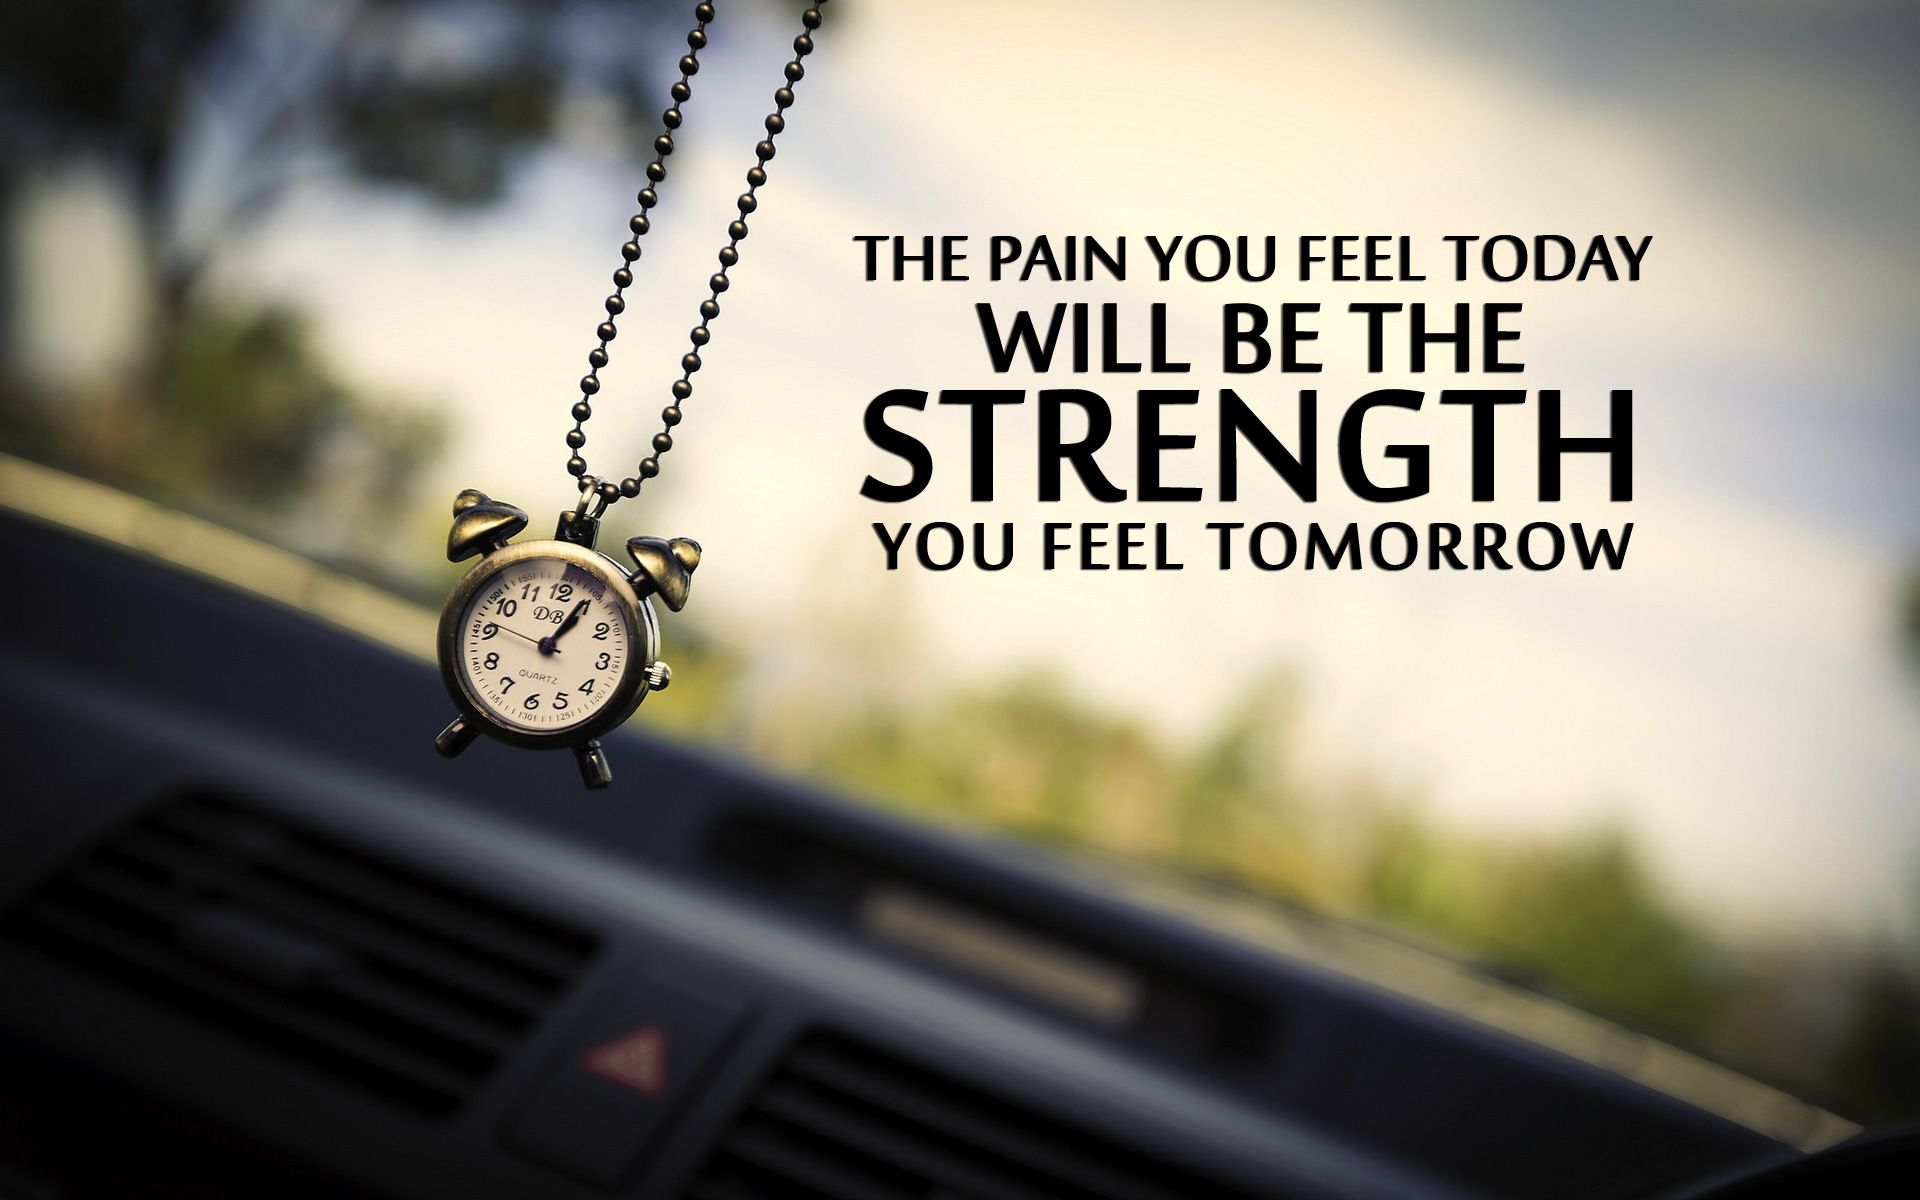 Hd Wallpapers For Pc Full Screen Quotes